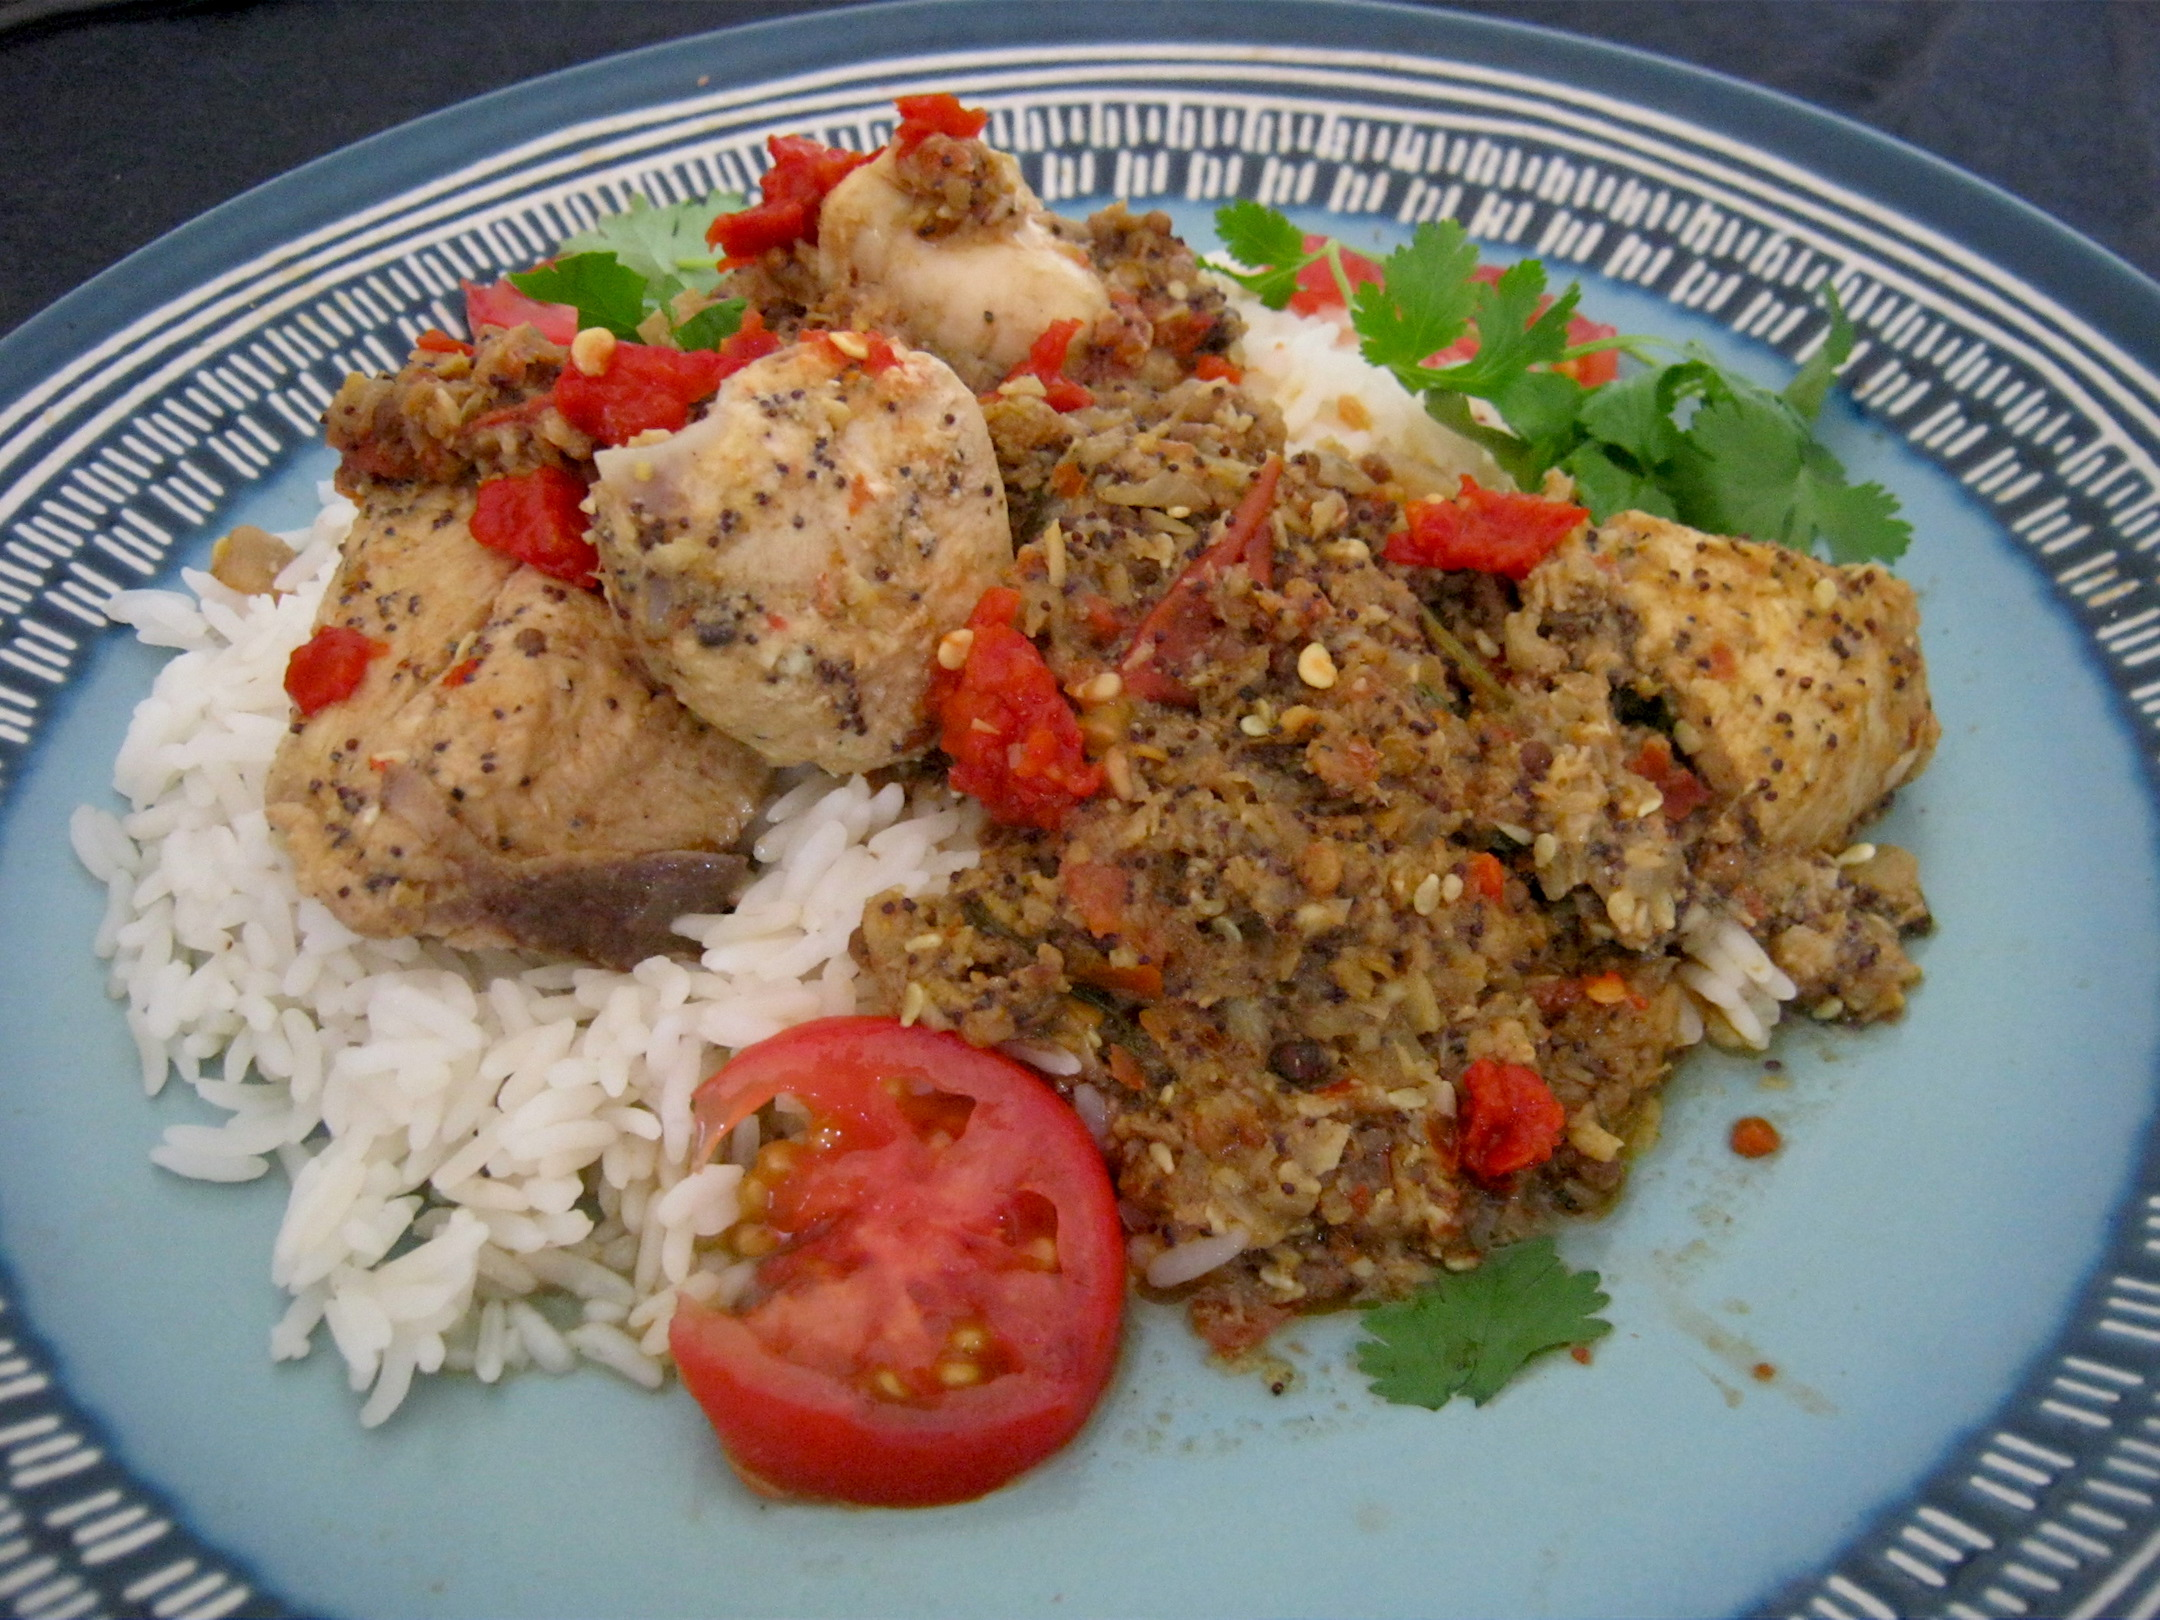 Kolhapuri Chicken with steamed rice and garnished with tomato and fresh coriander leaves